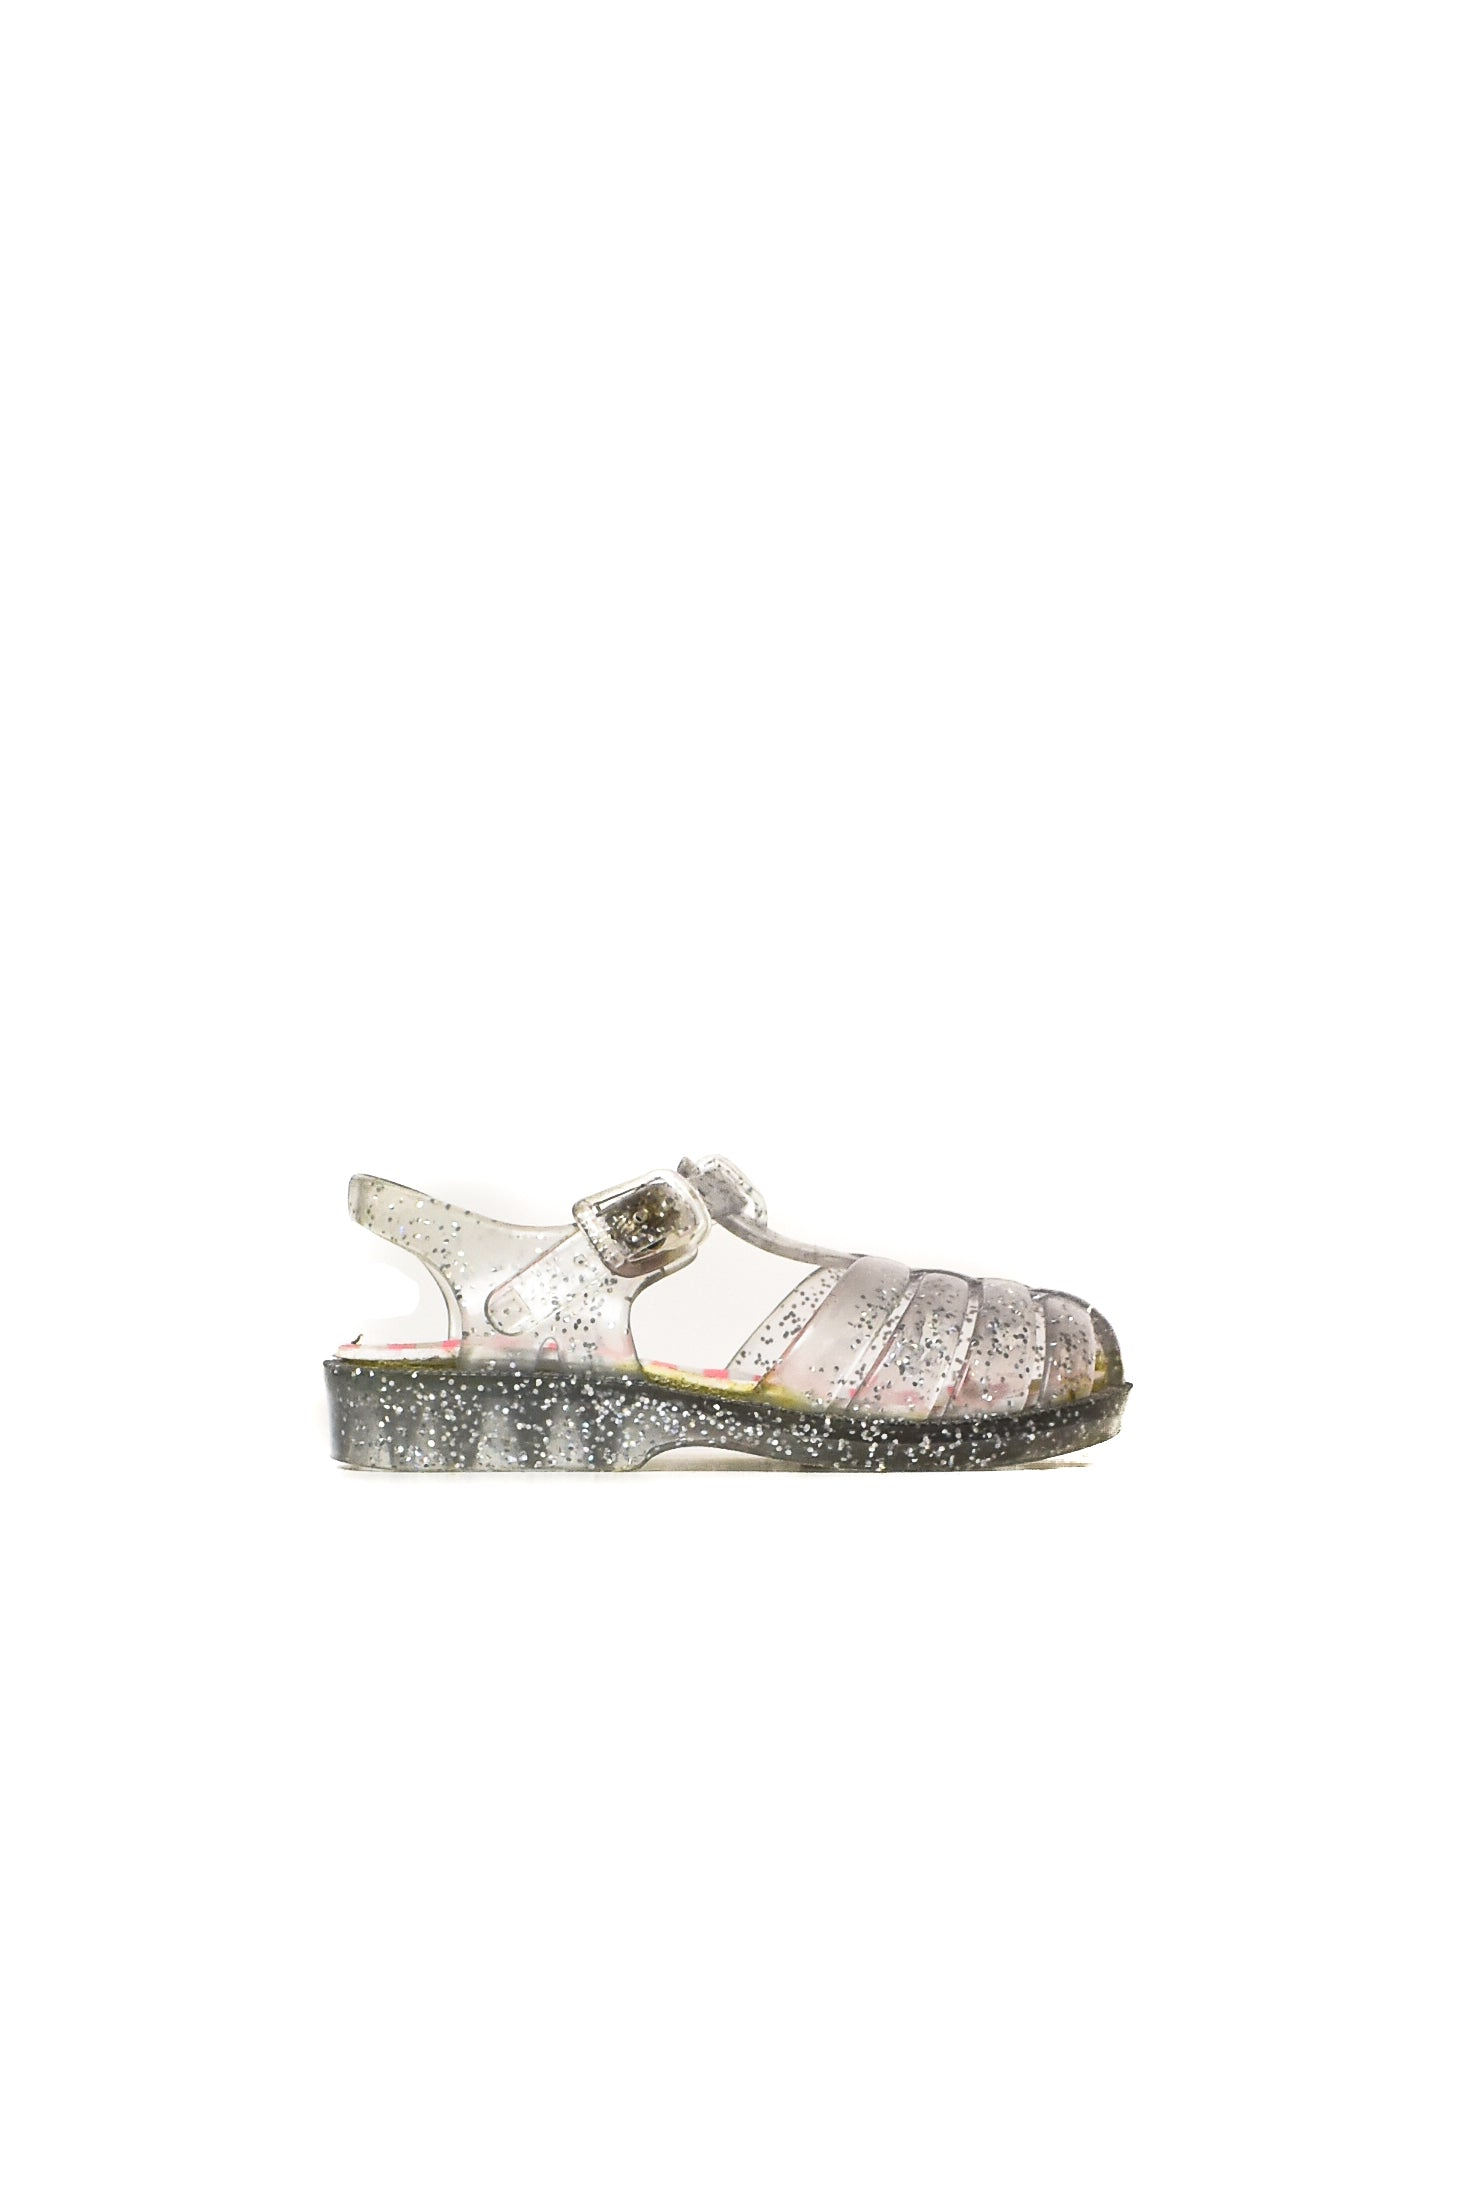 10008467 Seed Kids ~ Sandals 3T (EU 25) at Retykle